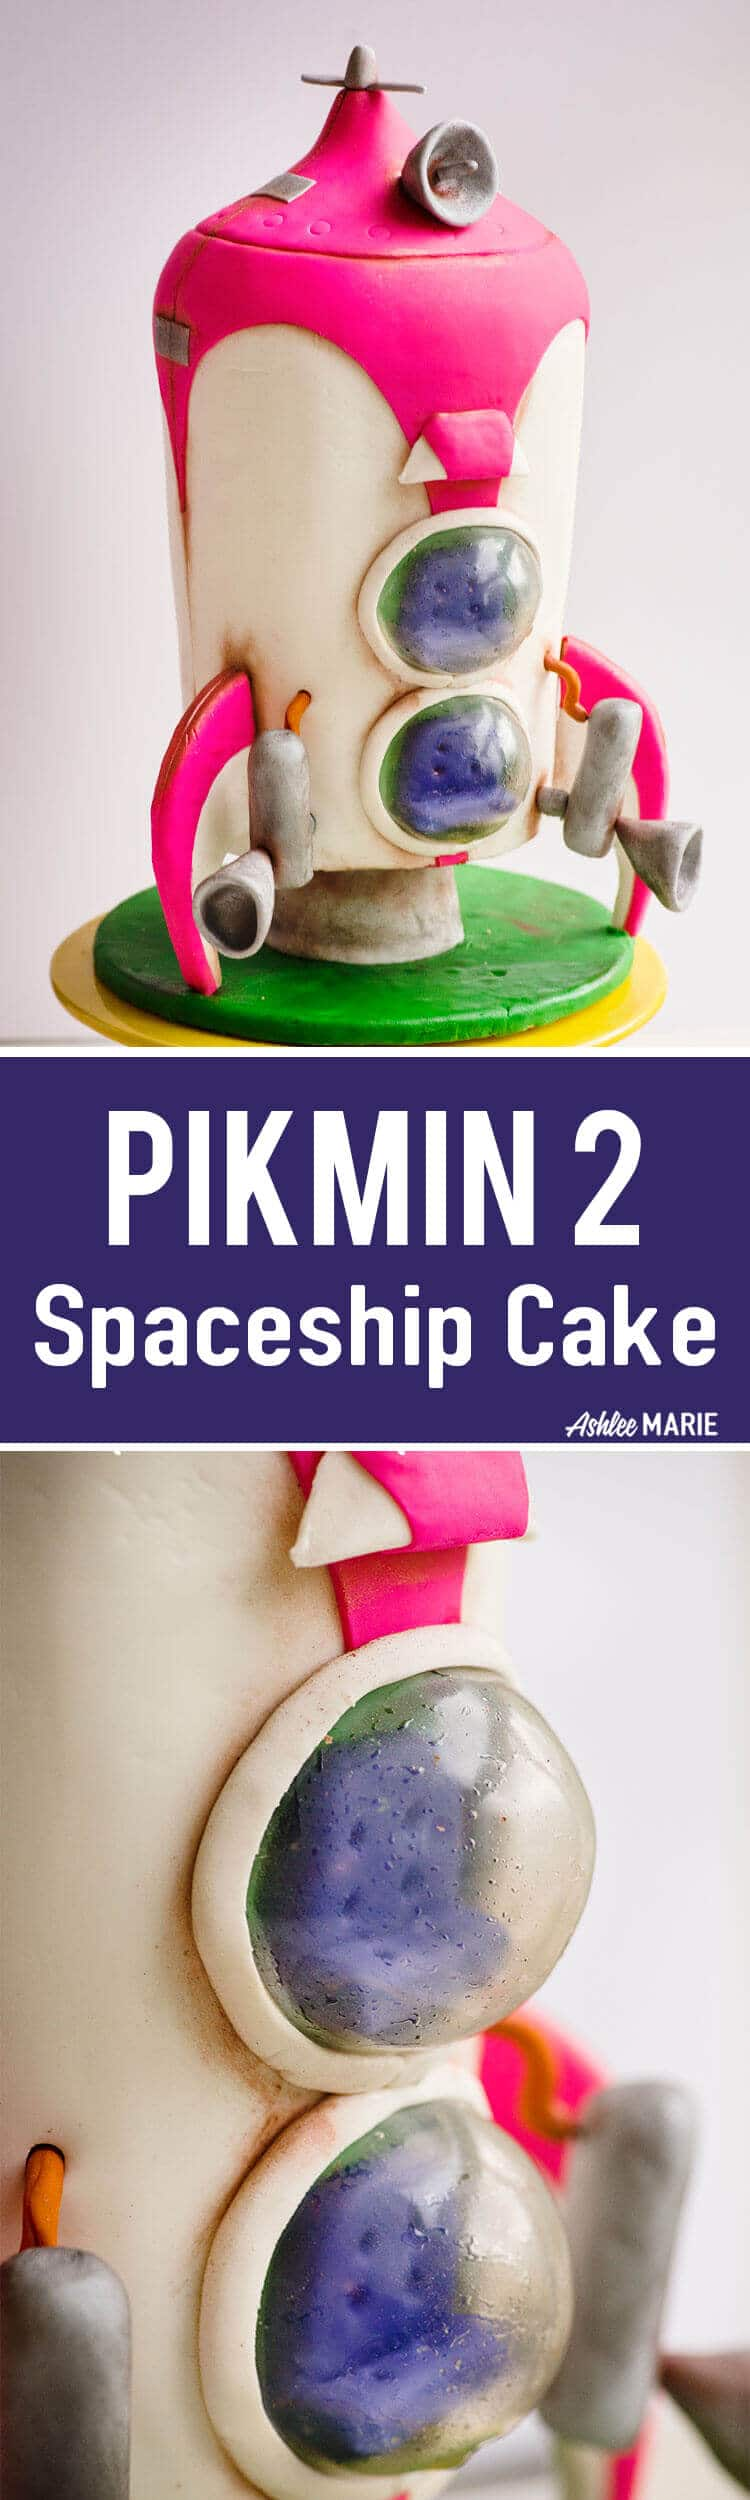 this pikmin 2 spaceship was for my sons birthday party